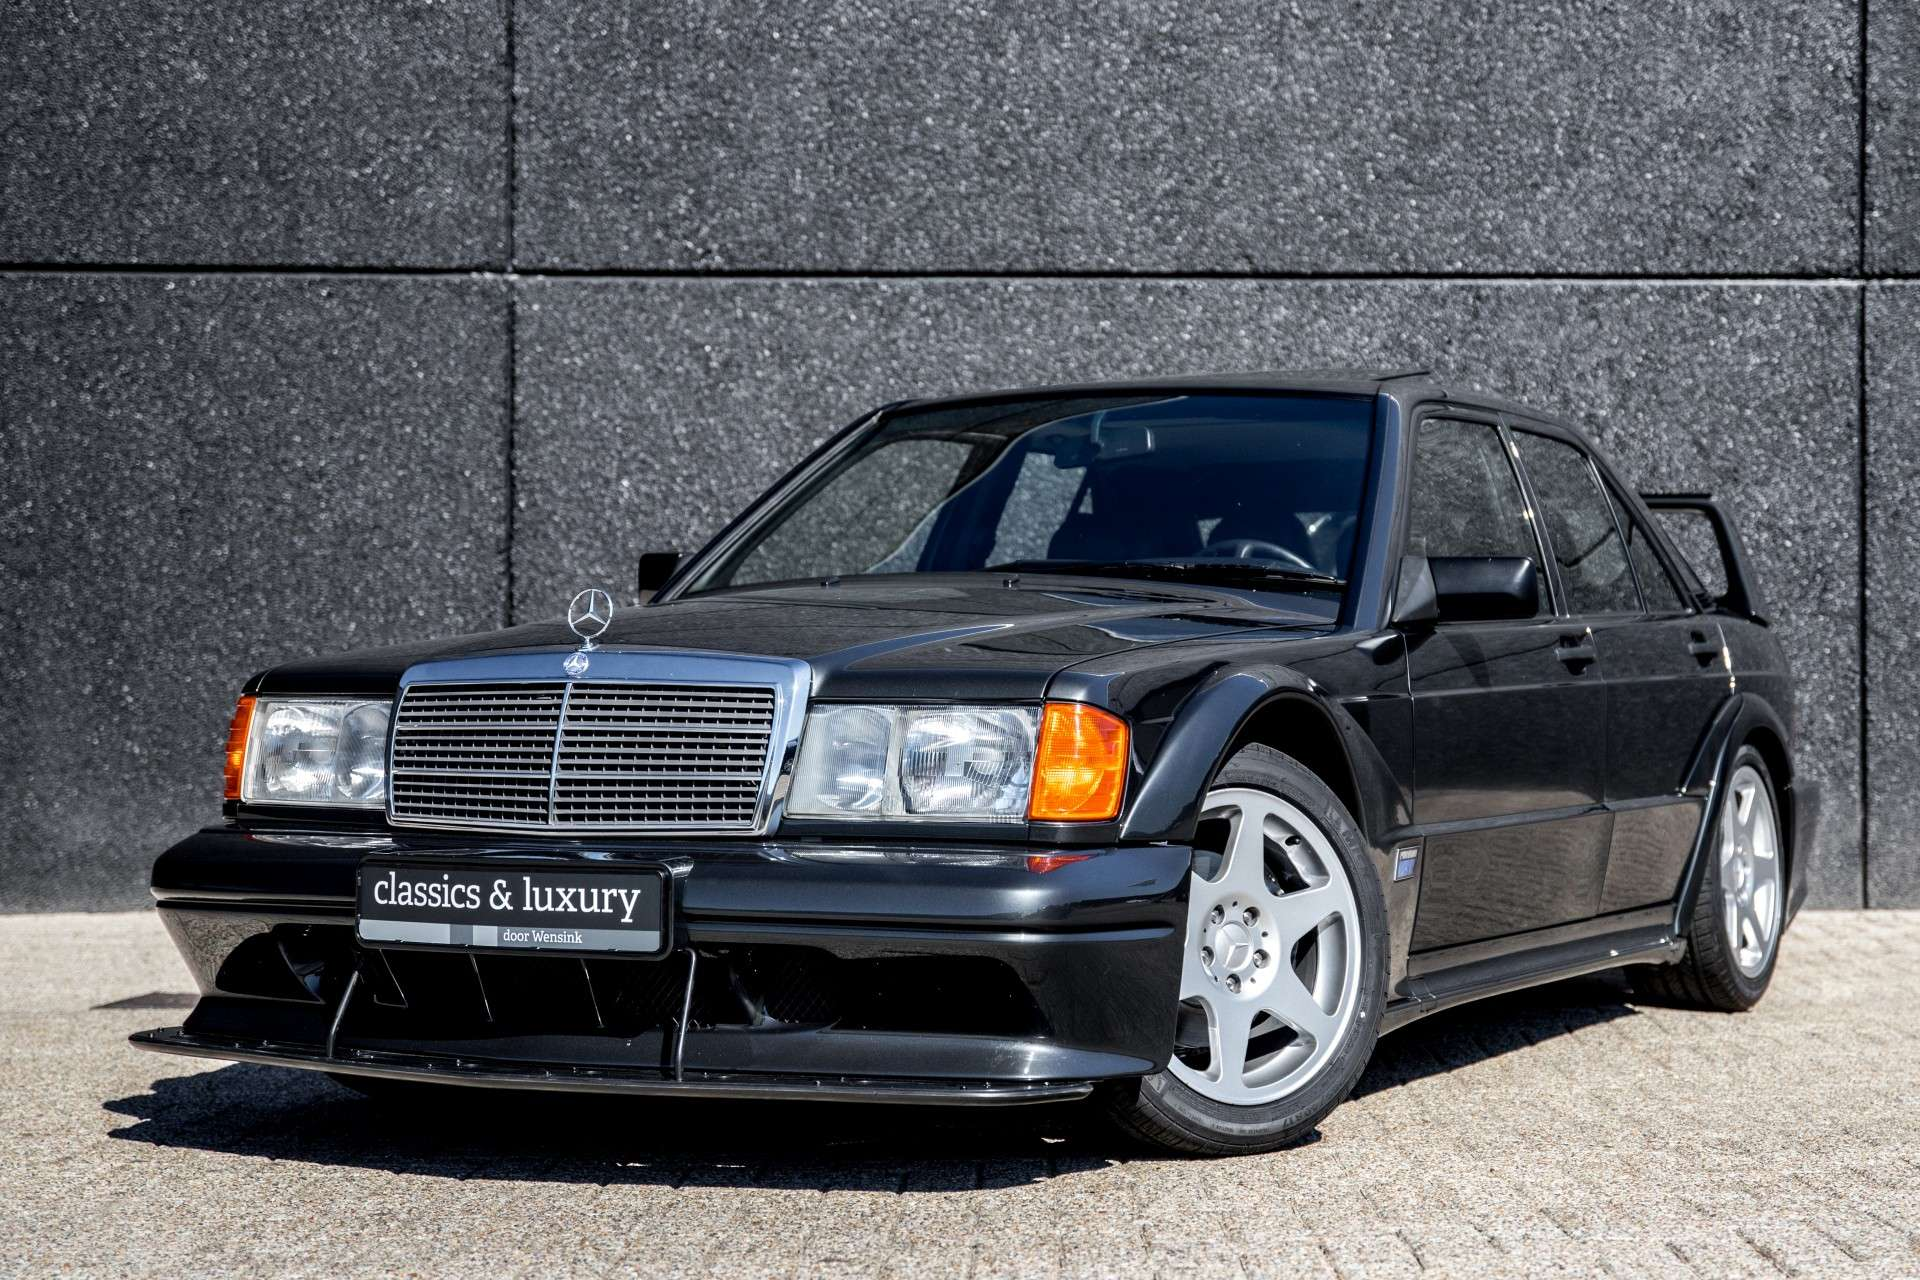 mercedes-benz-190-25-16-evolution-ii-w201-blue-occasion-1.jpg